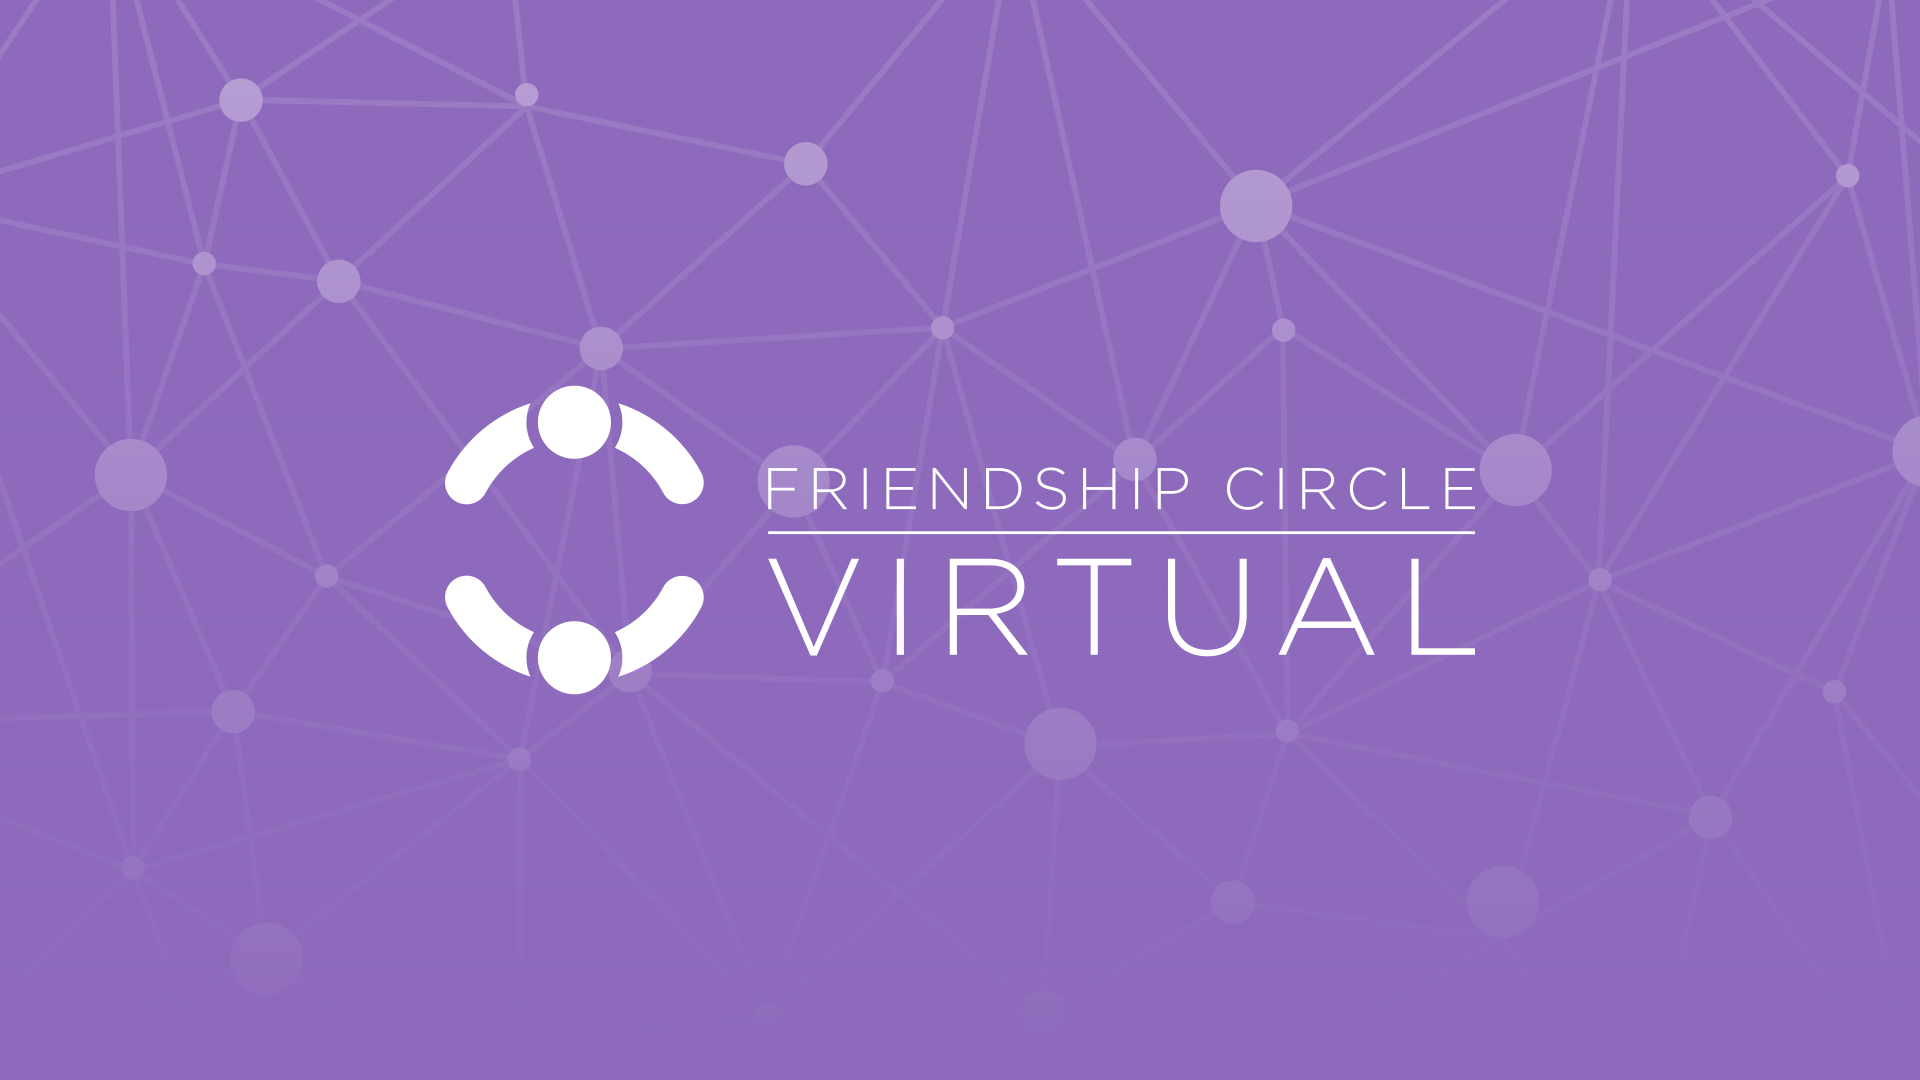 Friendship Circle Virtual